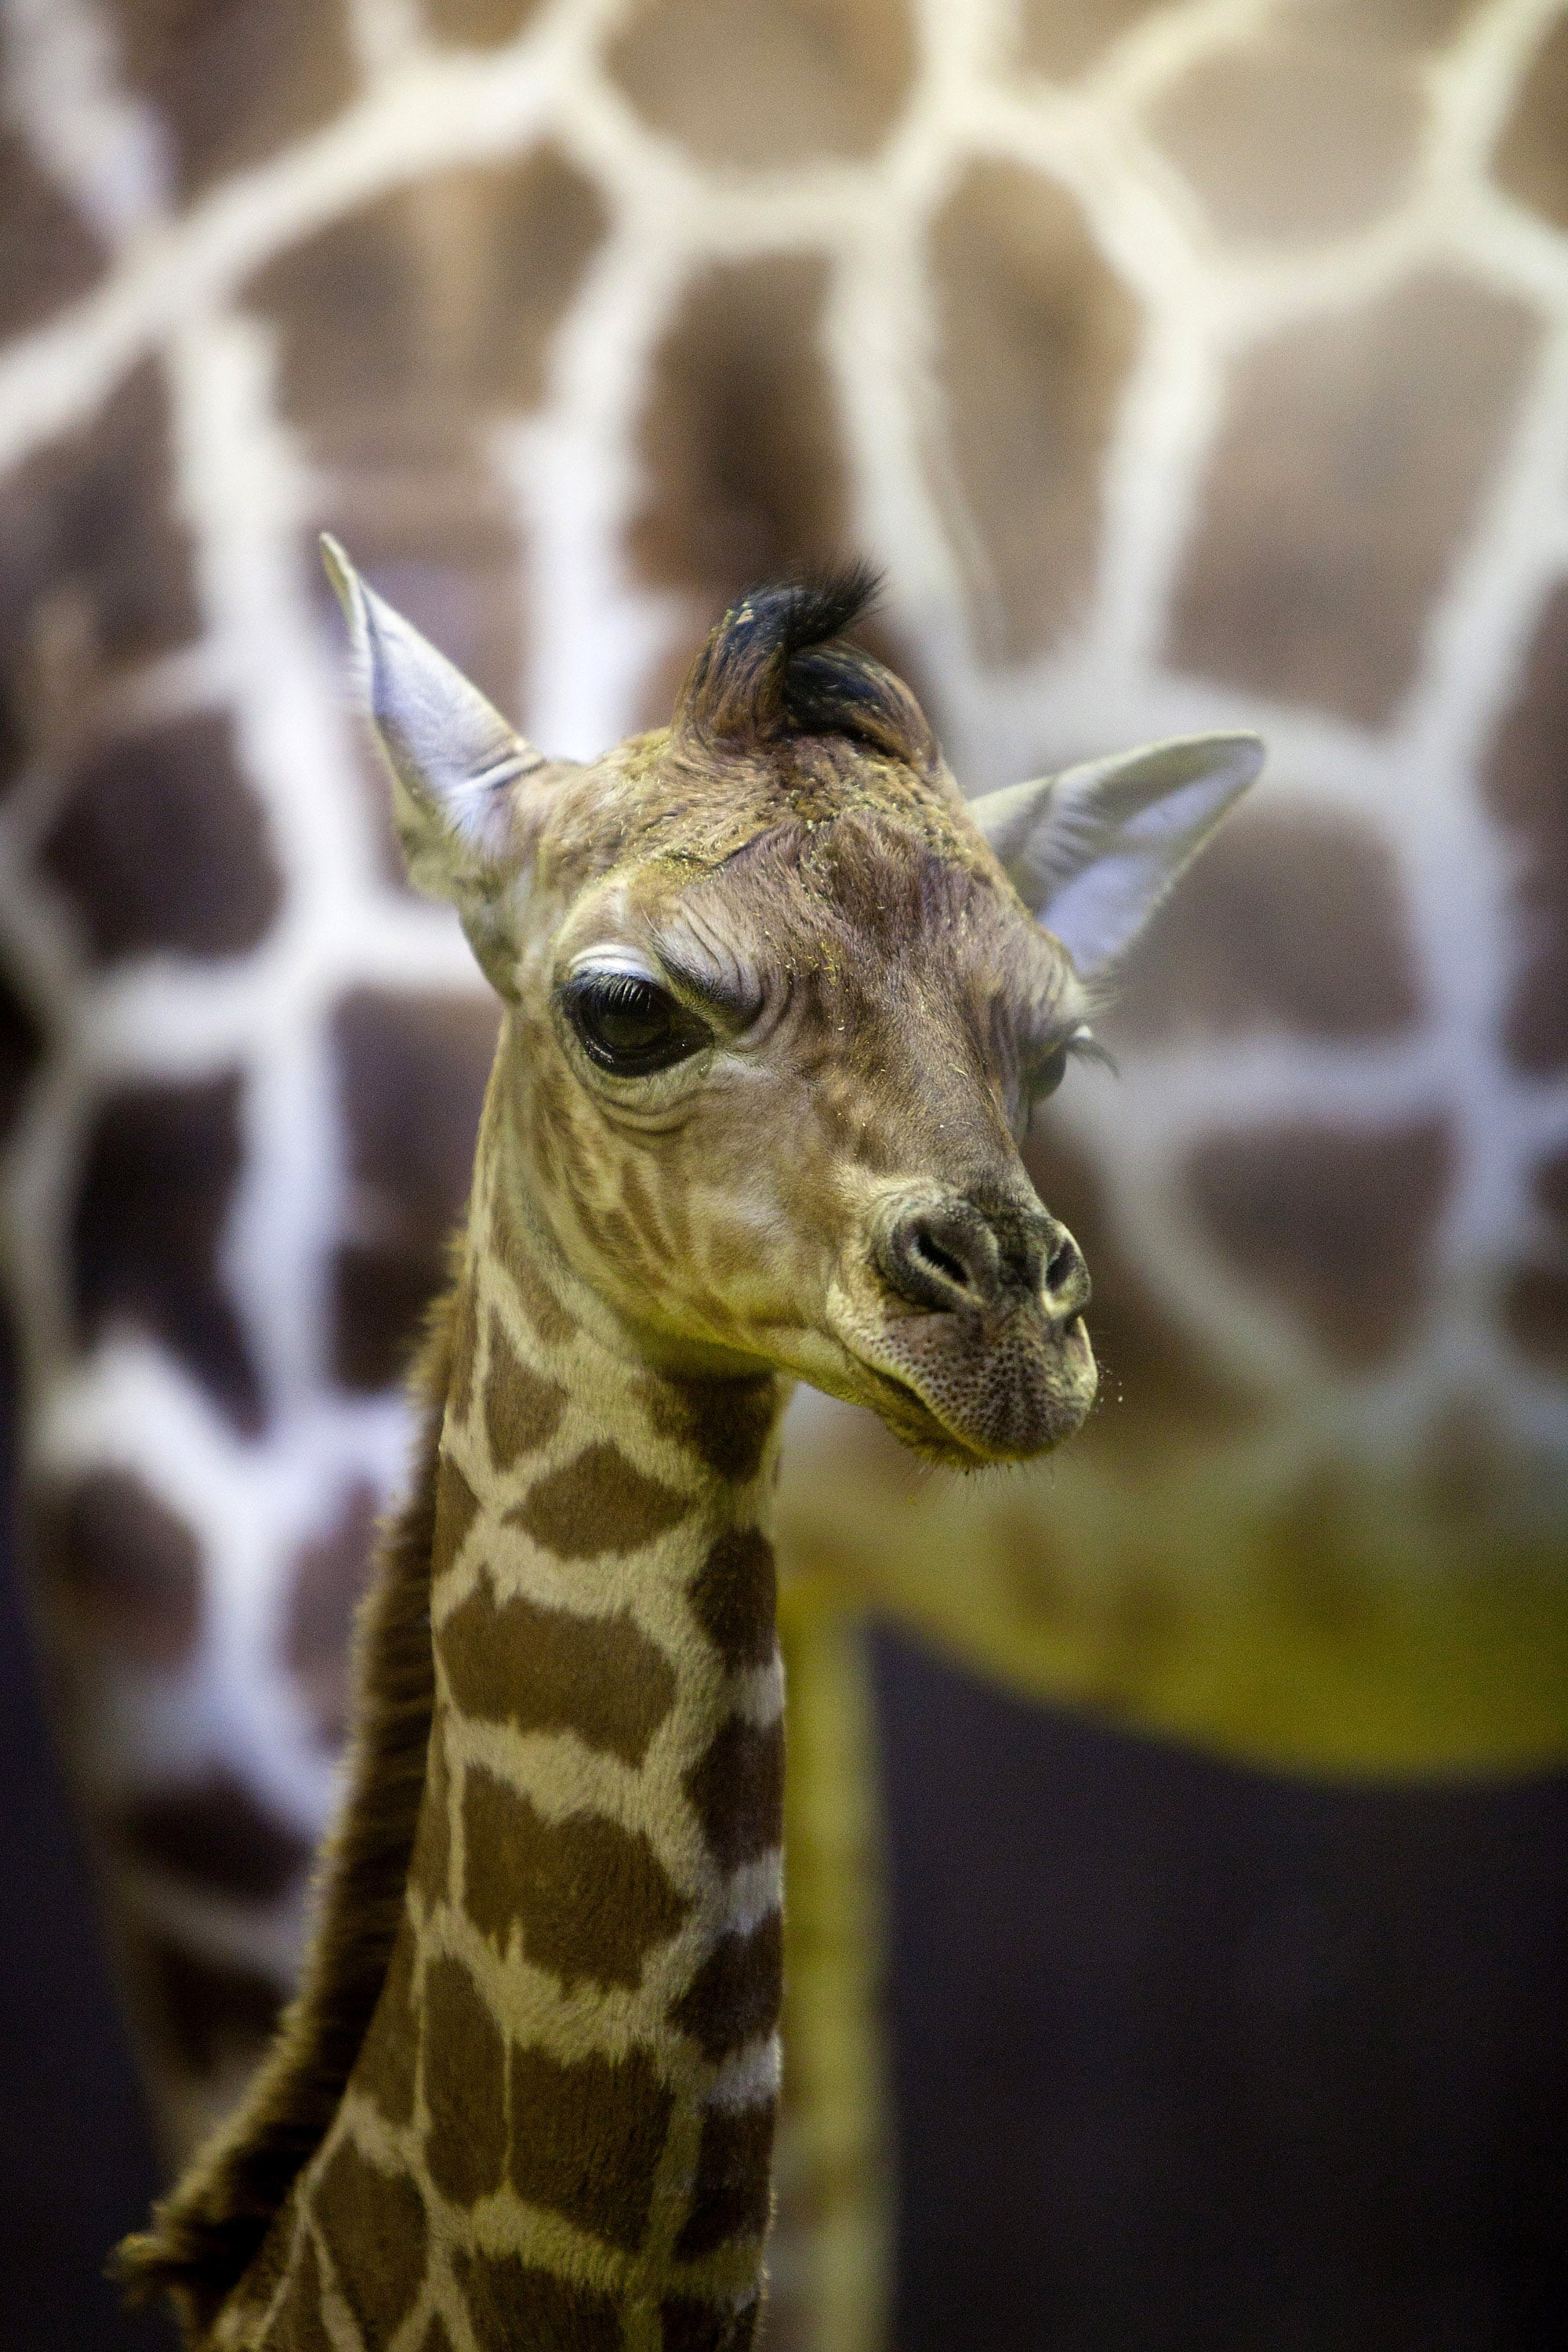 Long legs and necks allow giraffes to reach food sources up to 16 feet high. Their 20-inch-long prehensile tongues wrap around foliage to help them tear leaves and branches high up in the trees.